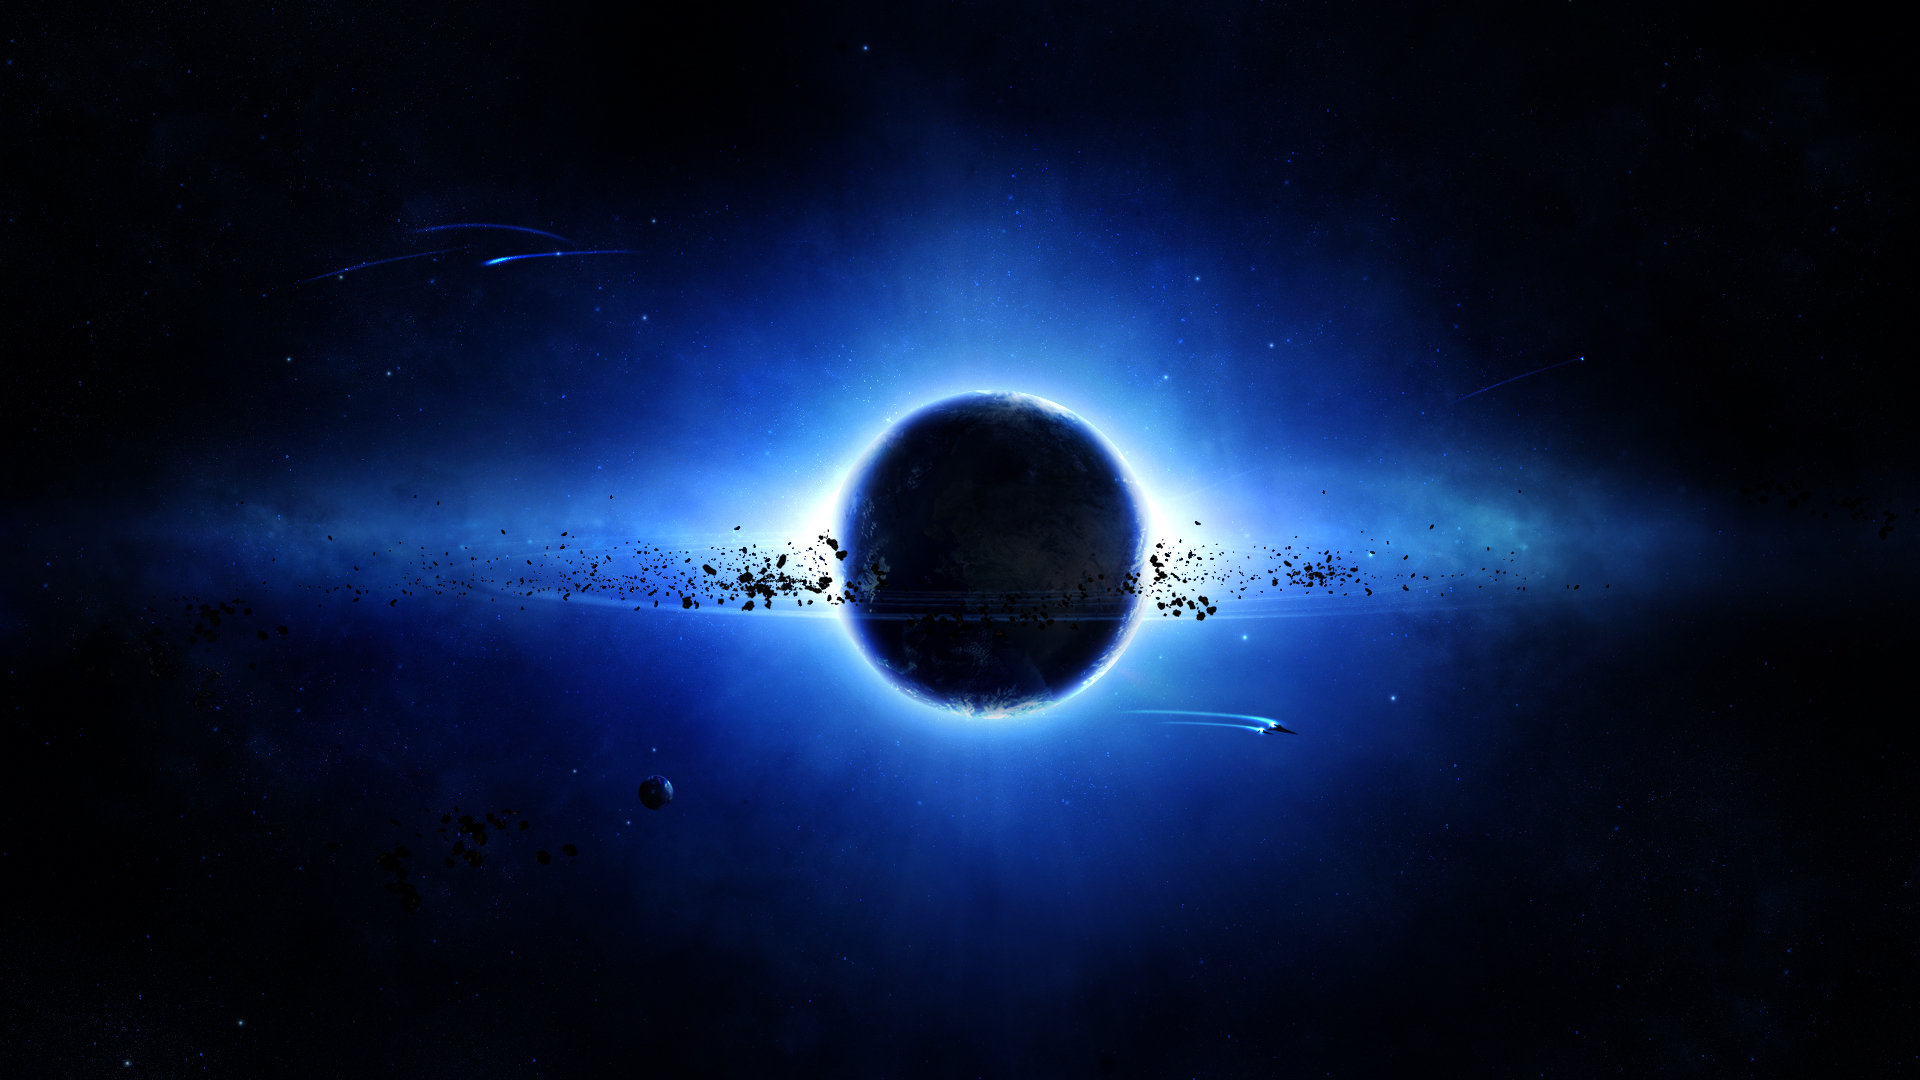 Download 1080p Planetary Ring PC background ID:256485 for free